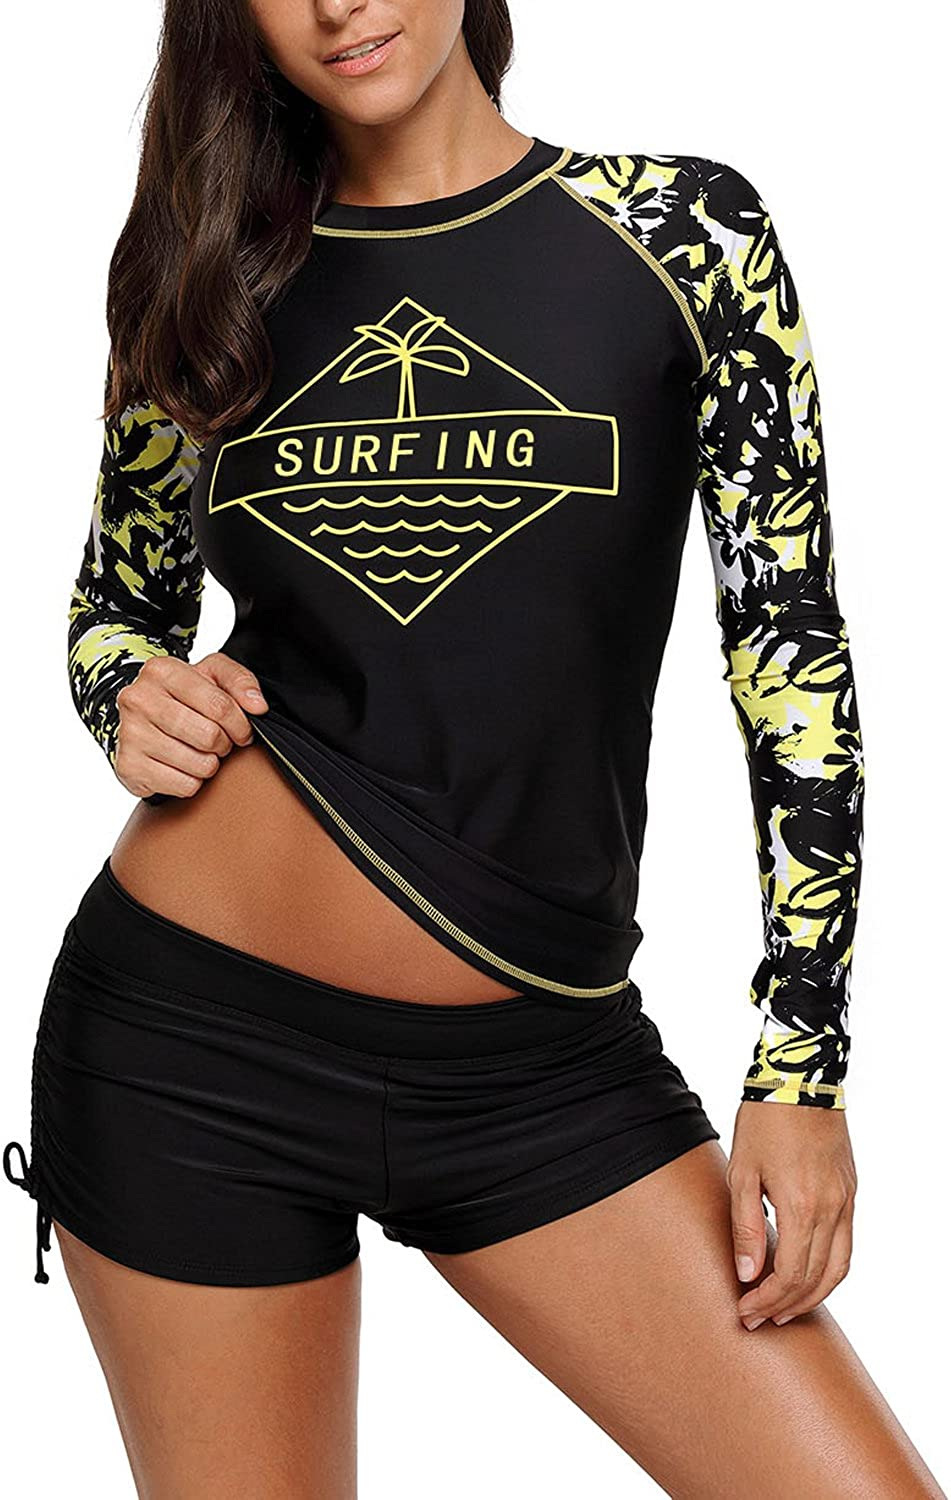 EVALESS Women's Long Sleeve Sun Predection Splice Rashguard Swim Shirt Tops(SXXXL)